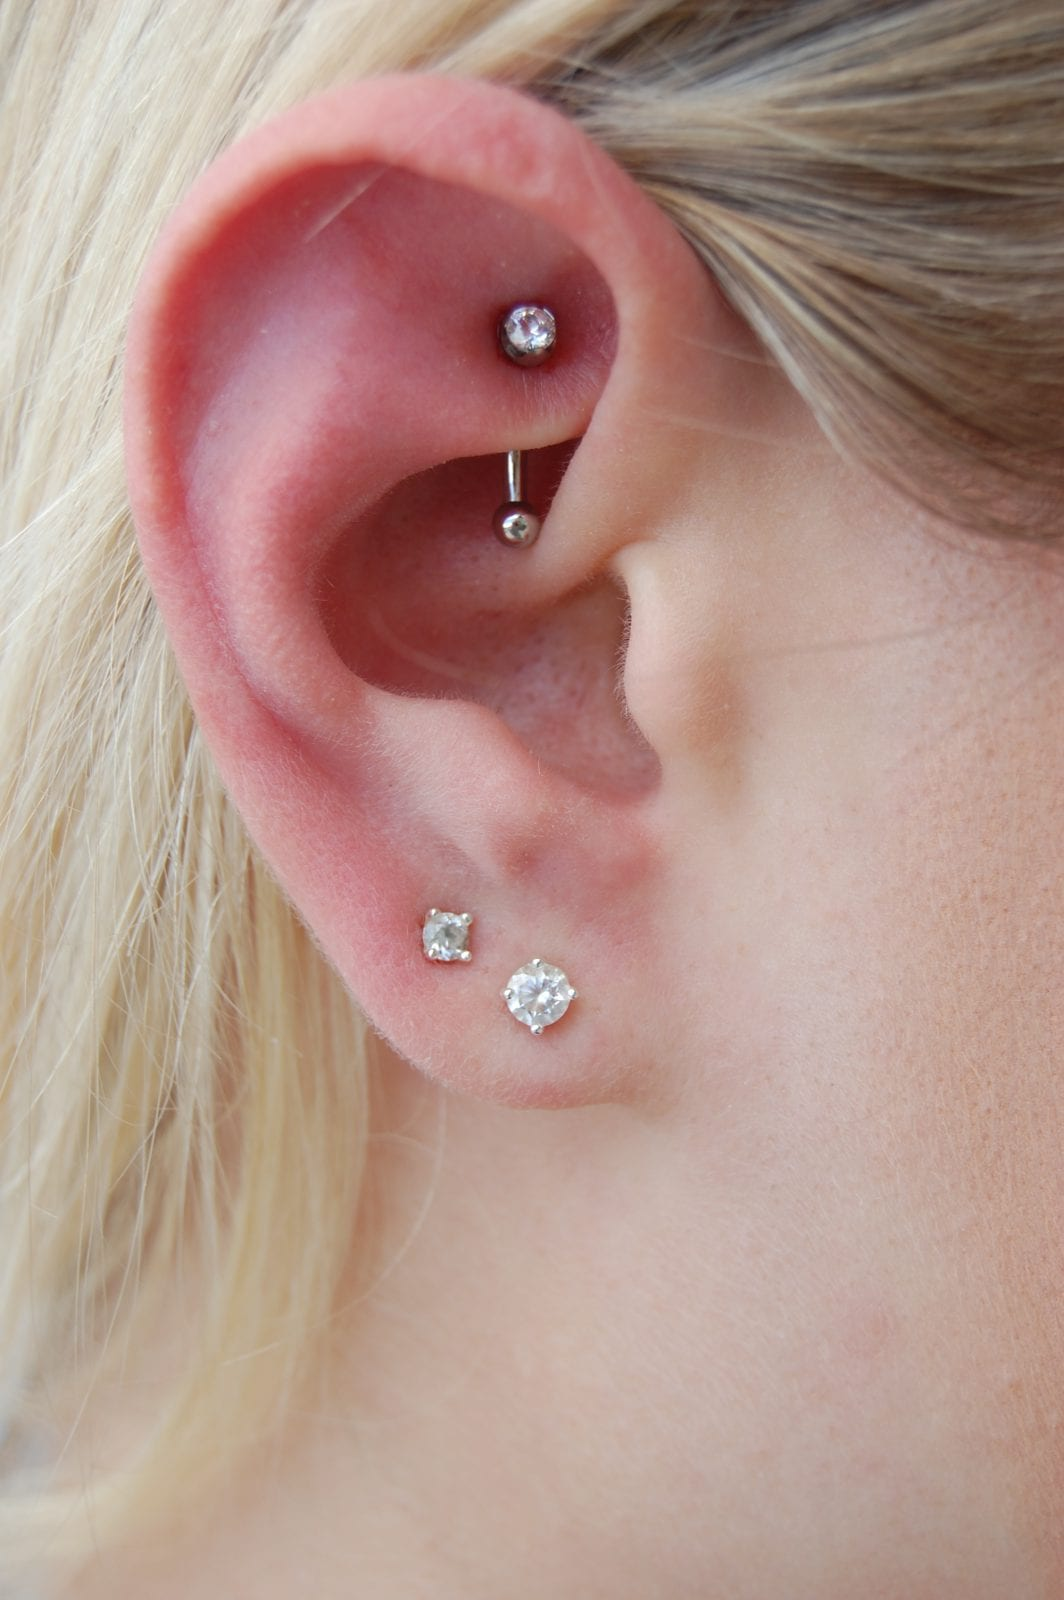 Rook And Faux Rook Amato Fine Jewelry Body Piercing